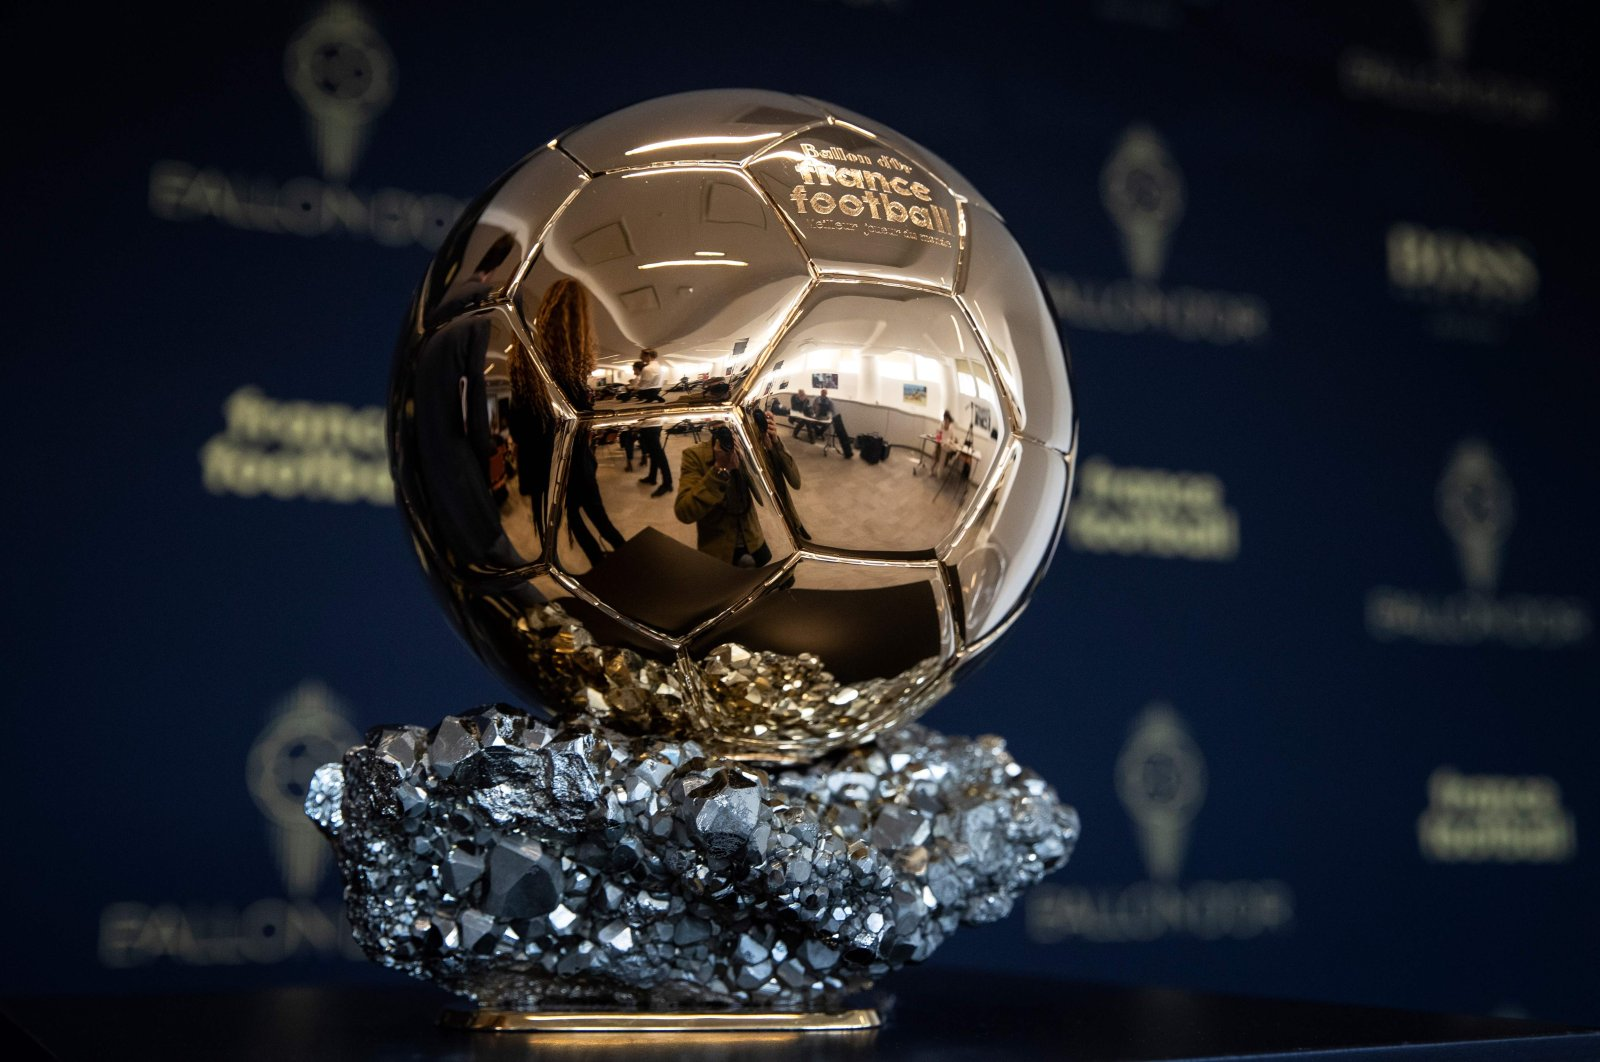 The Ballon d'Or trophy is displayed during a press conference on the outskirts of Paris, September 19, 2019. (AFP Photo)